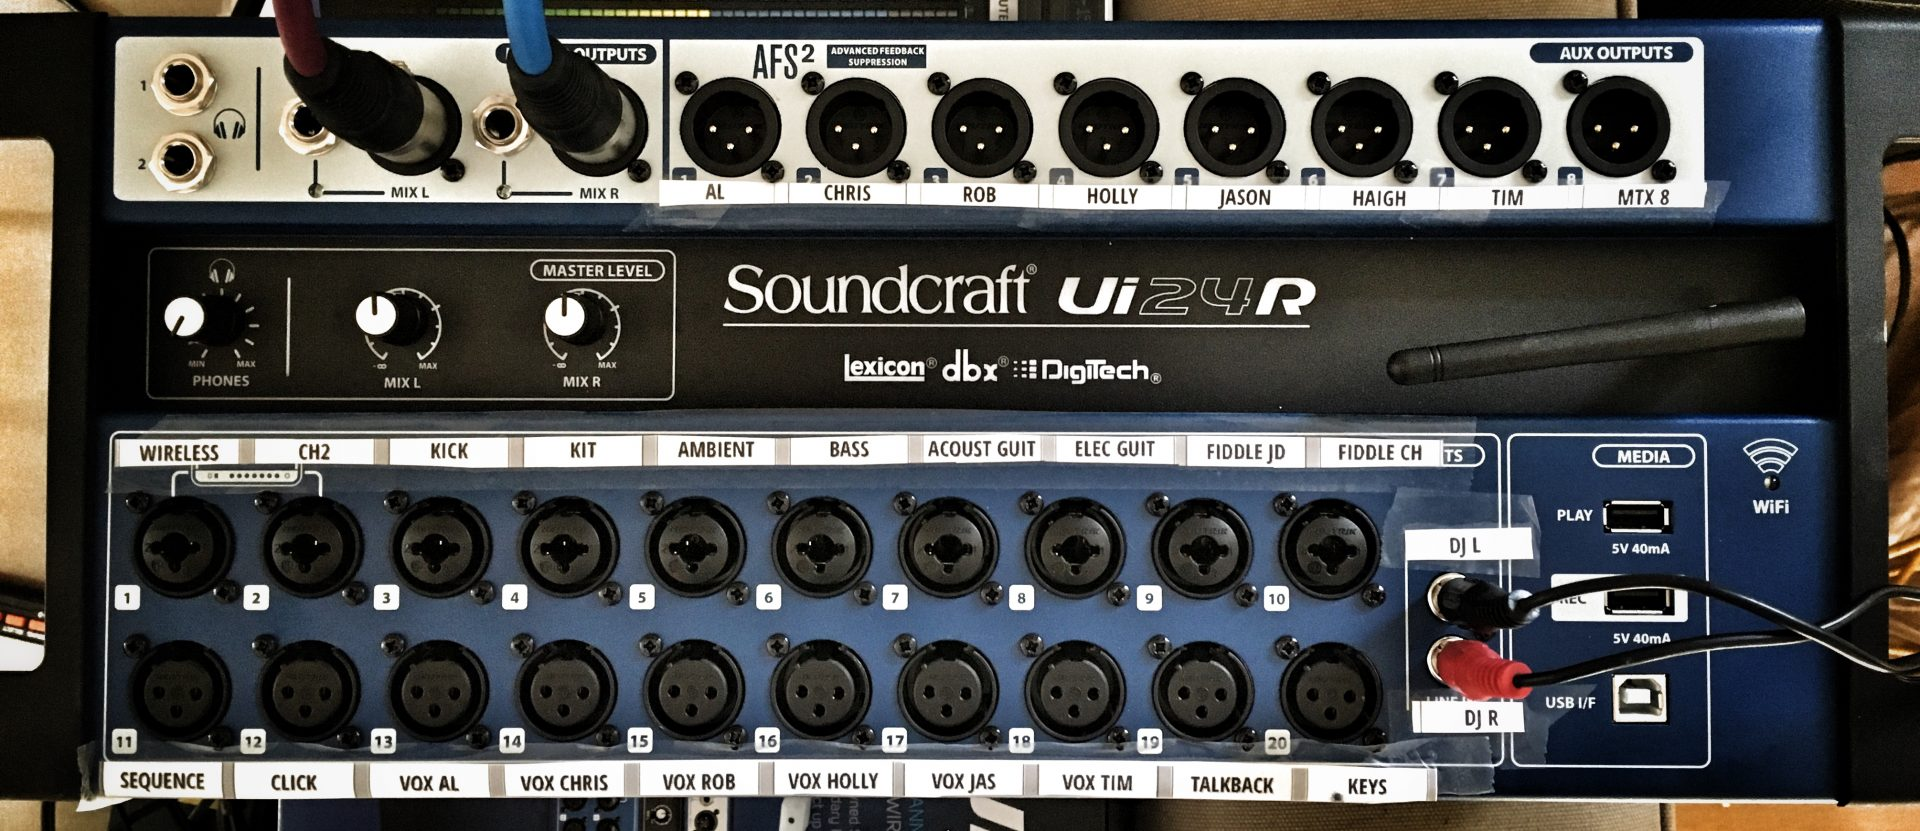 The Soundcraft Ui24R - Rollercoaster goes wireless